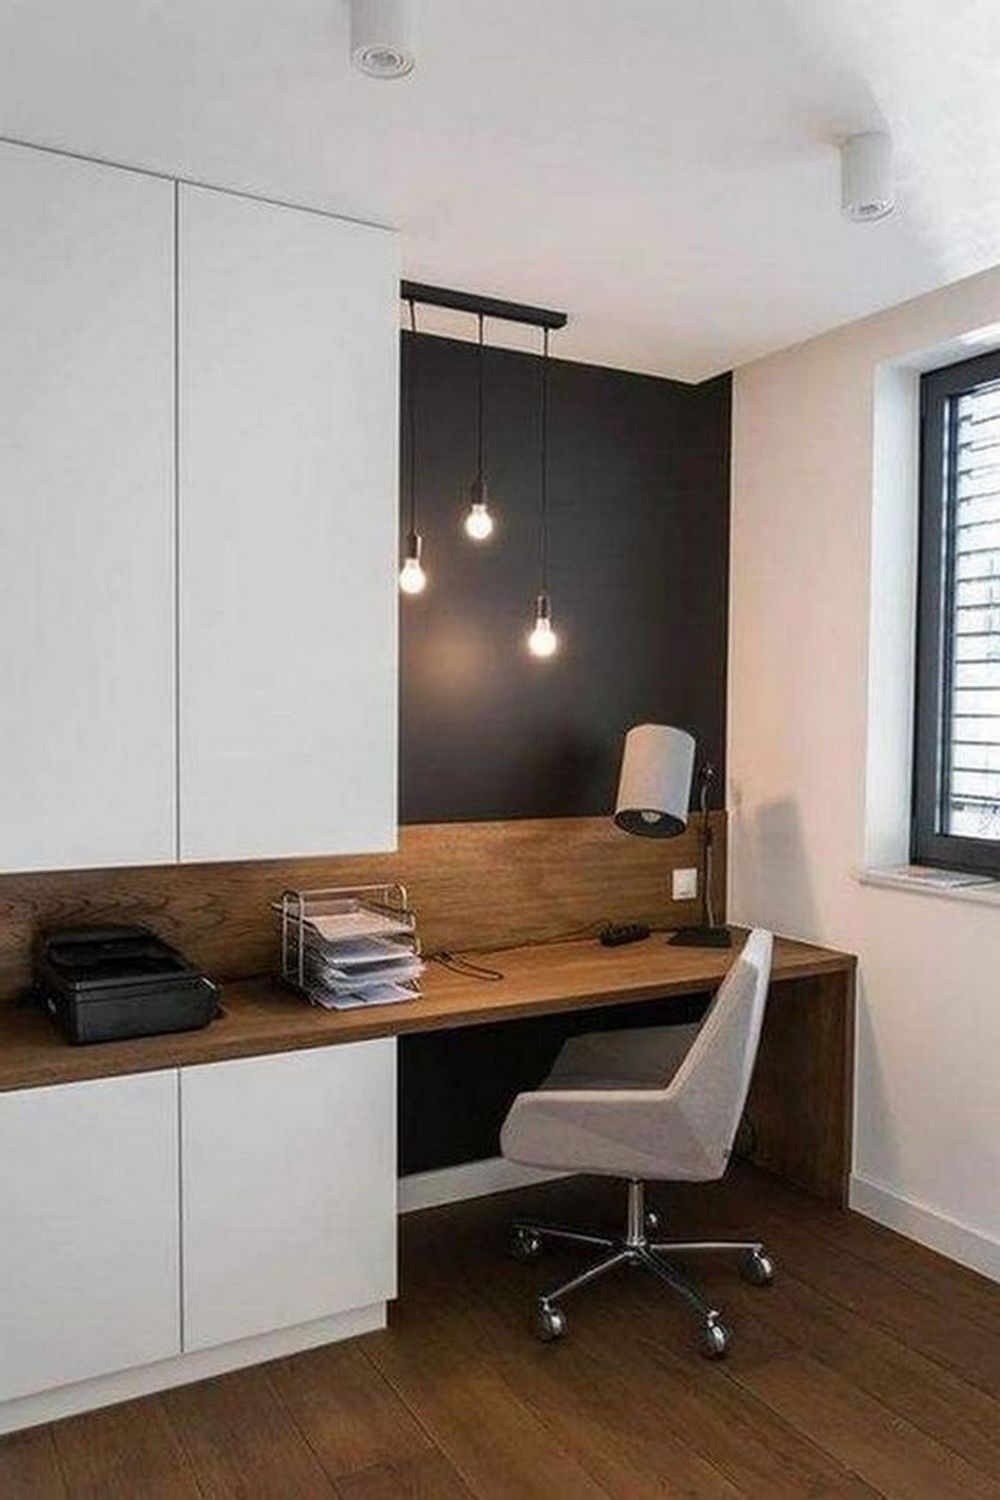 25 Modern Home Decoration Ideas With Simple Office Room Decoration Home Ideas Decoration Home Ideas M In 2020 Home Office Decor Office Room Home Office Design